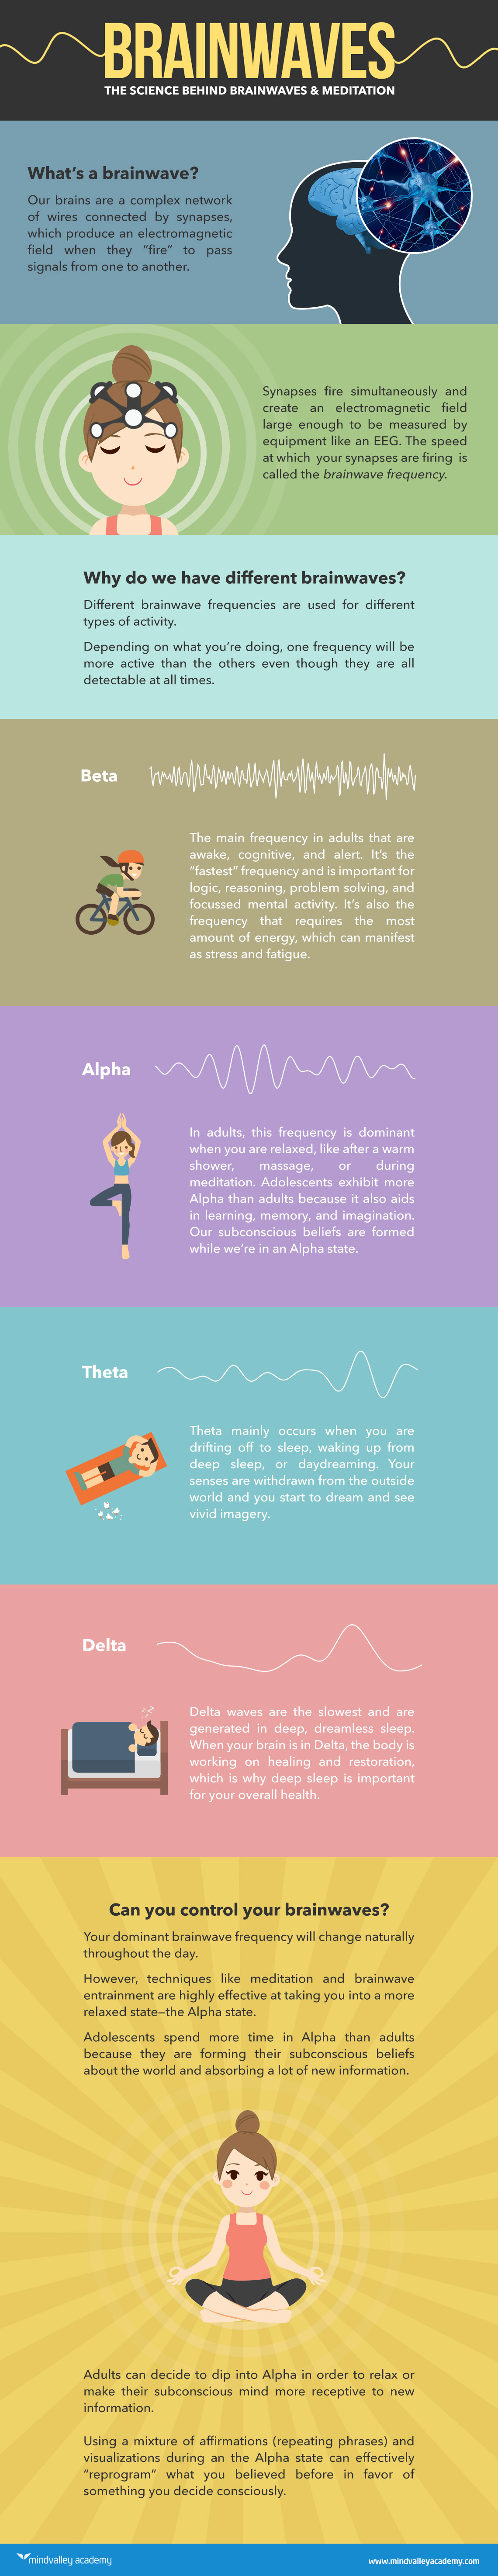 Brainwave Meditation: Useless Fad Or Effective Tool? Infographic